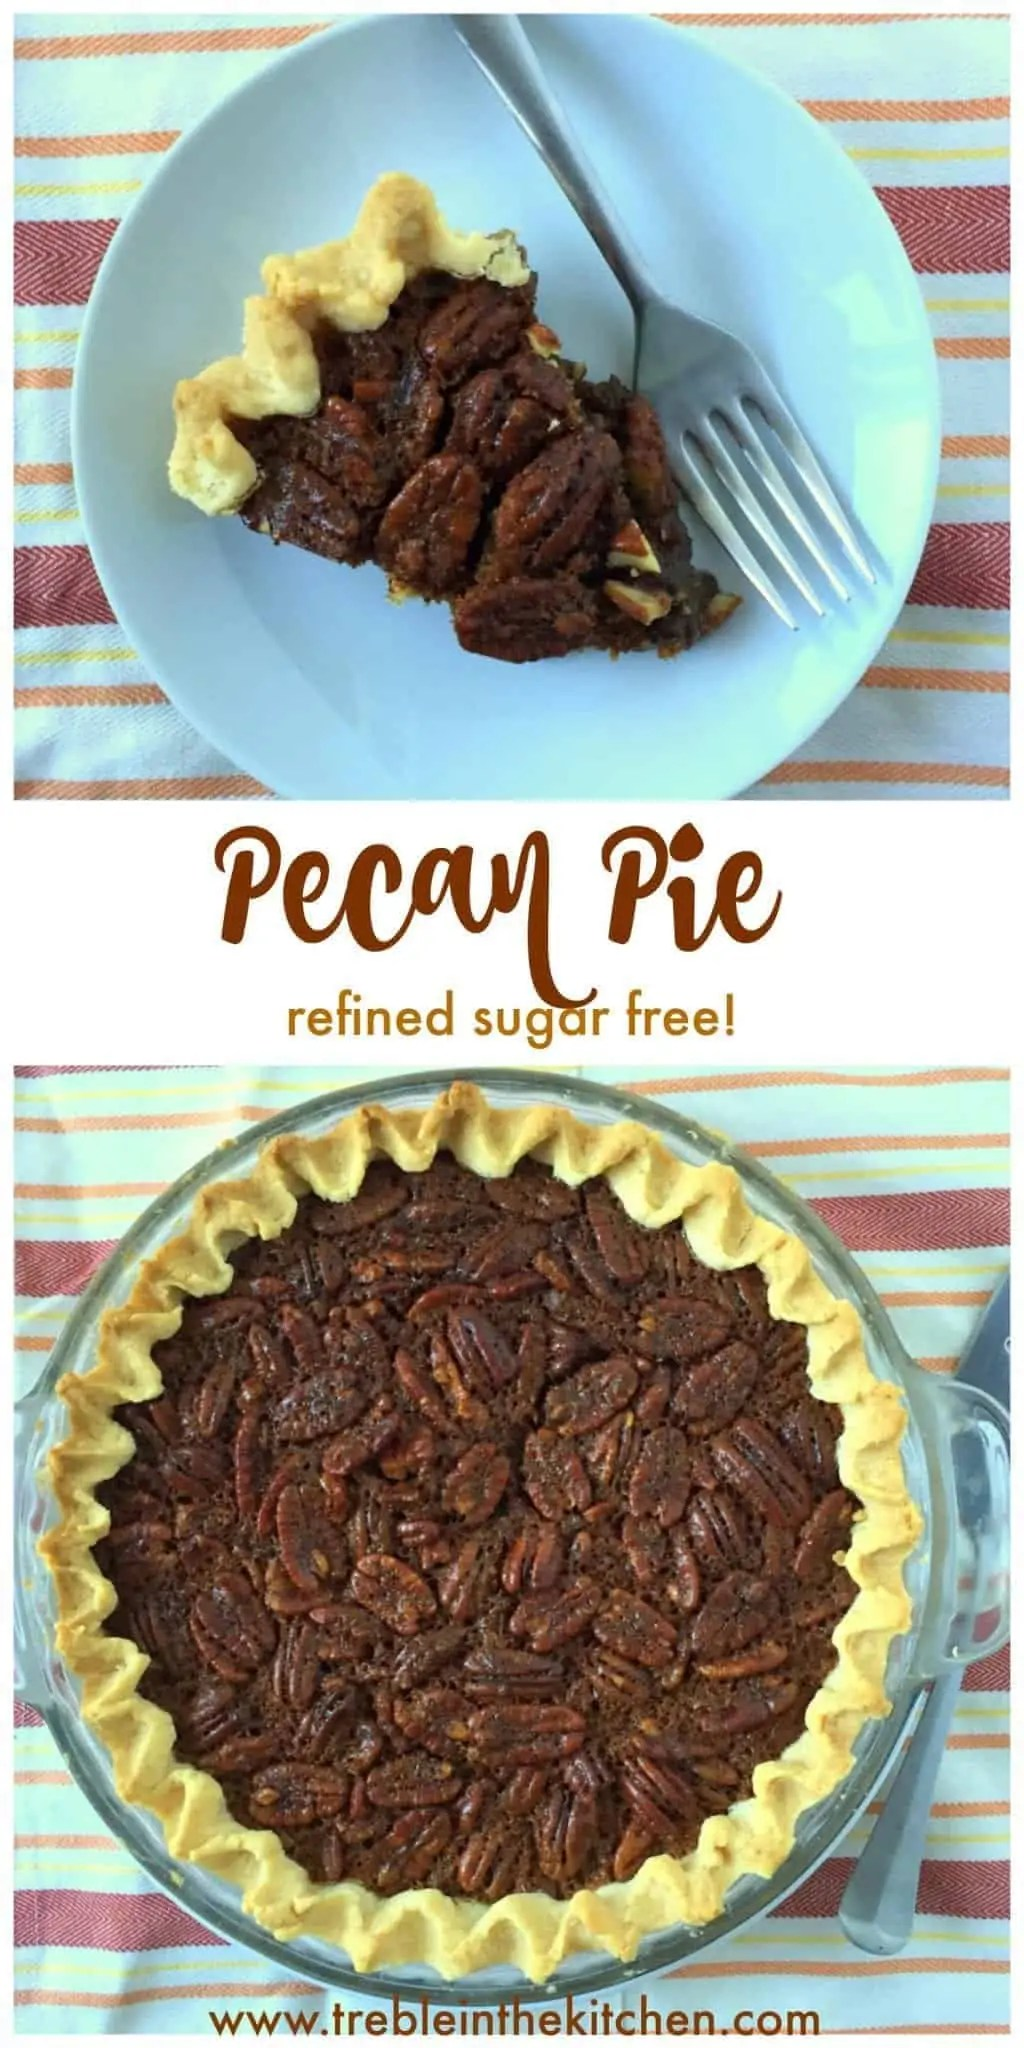 Pecan Pie from Treble in the Kitchen